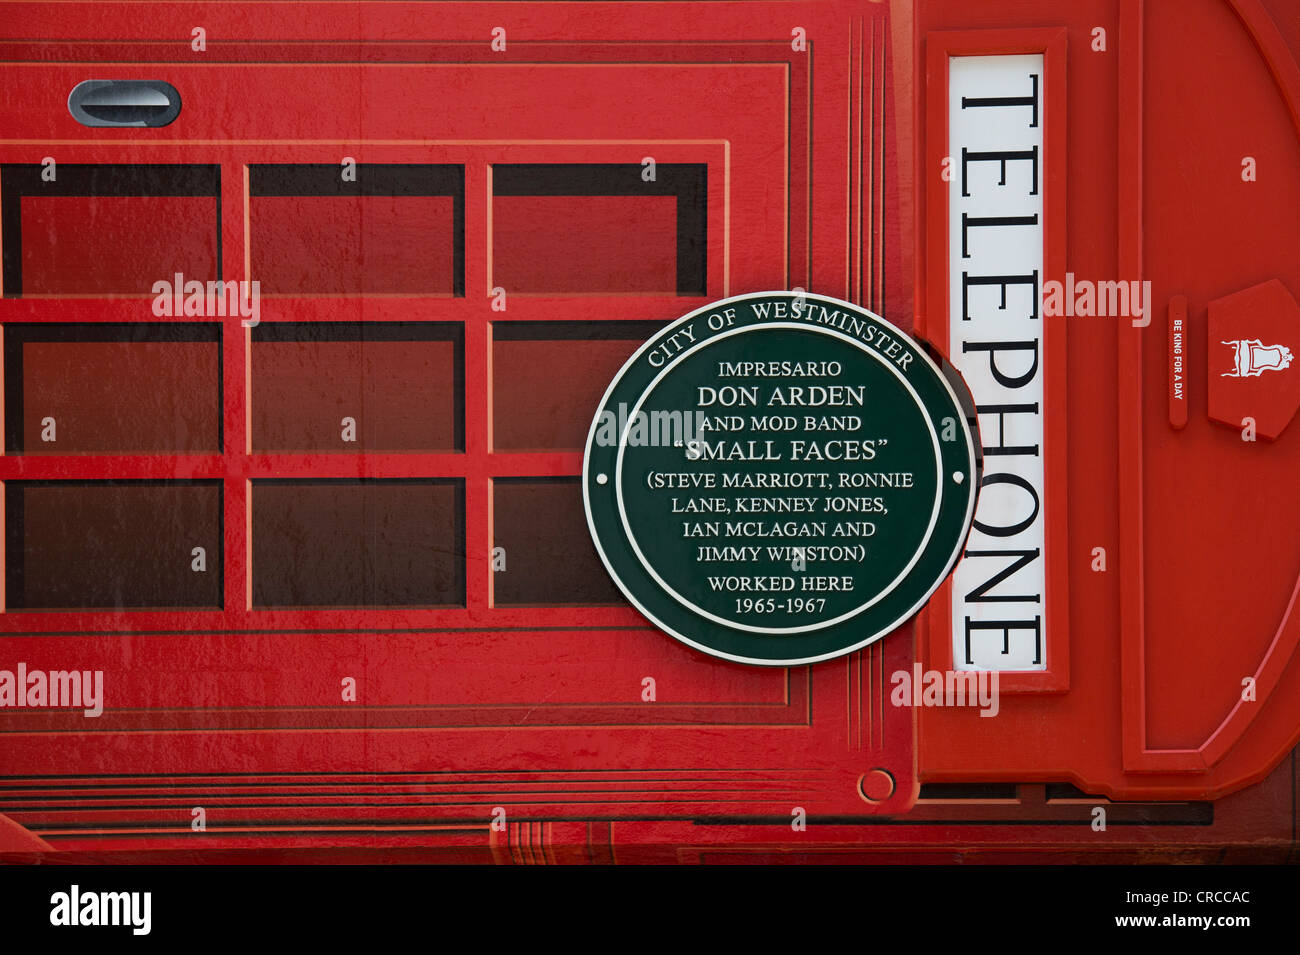 Don Arden / Small Faces plaque / Red telephone box Puma shop frontage. Carnaby Street, London, England - Stock Image